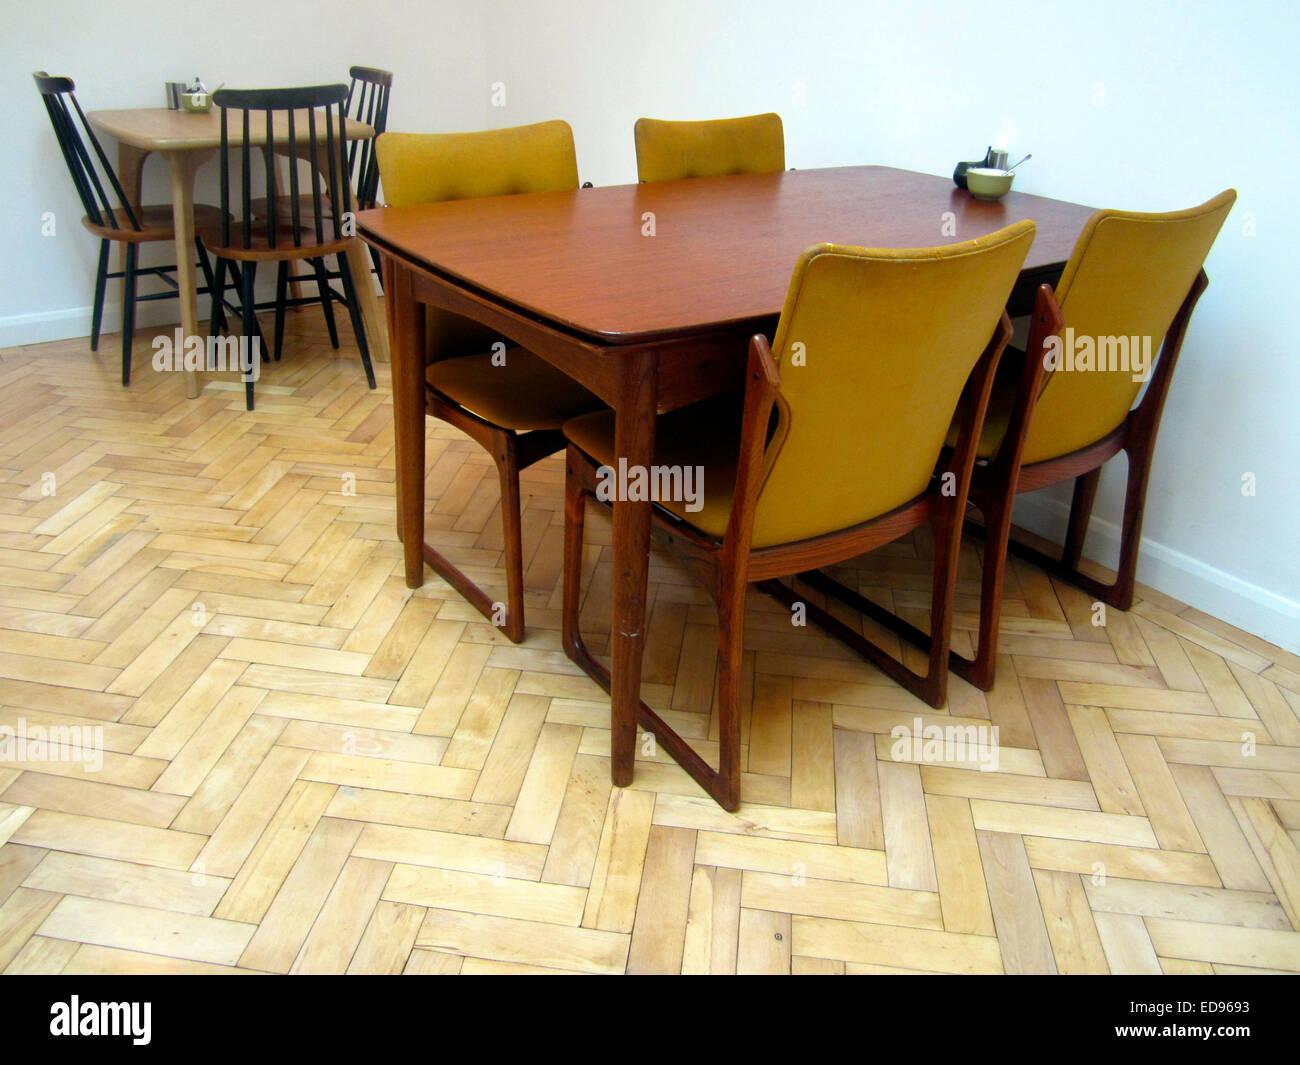 danish furniture in trendy london cafe stock photo